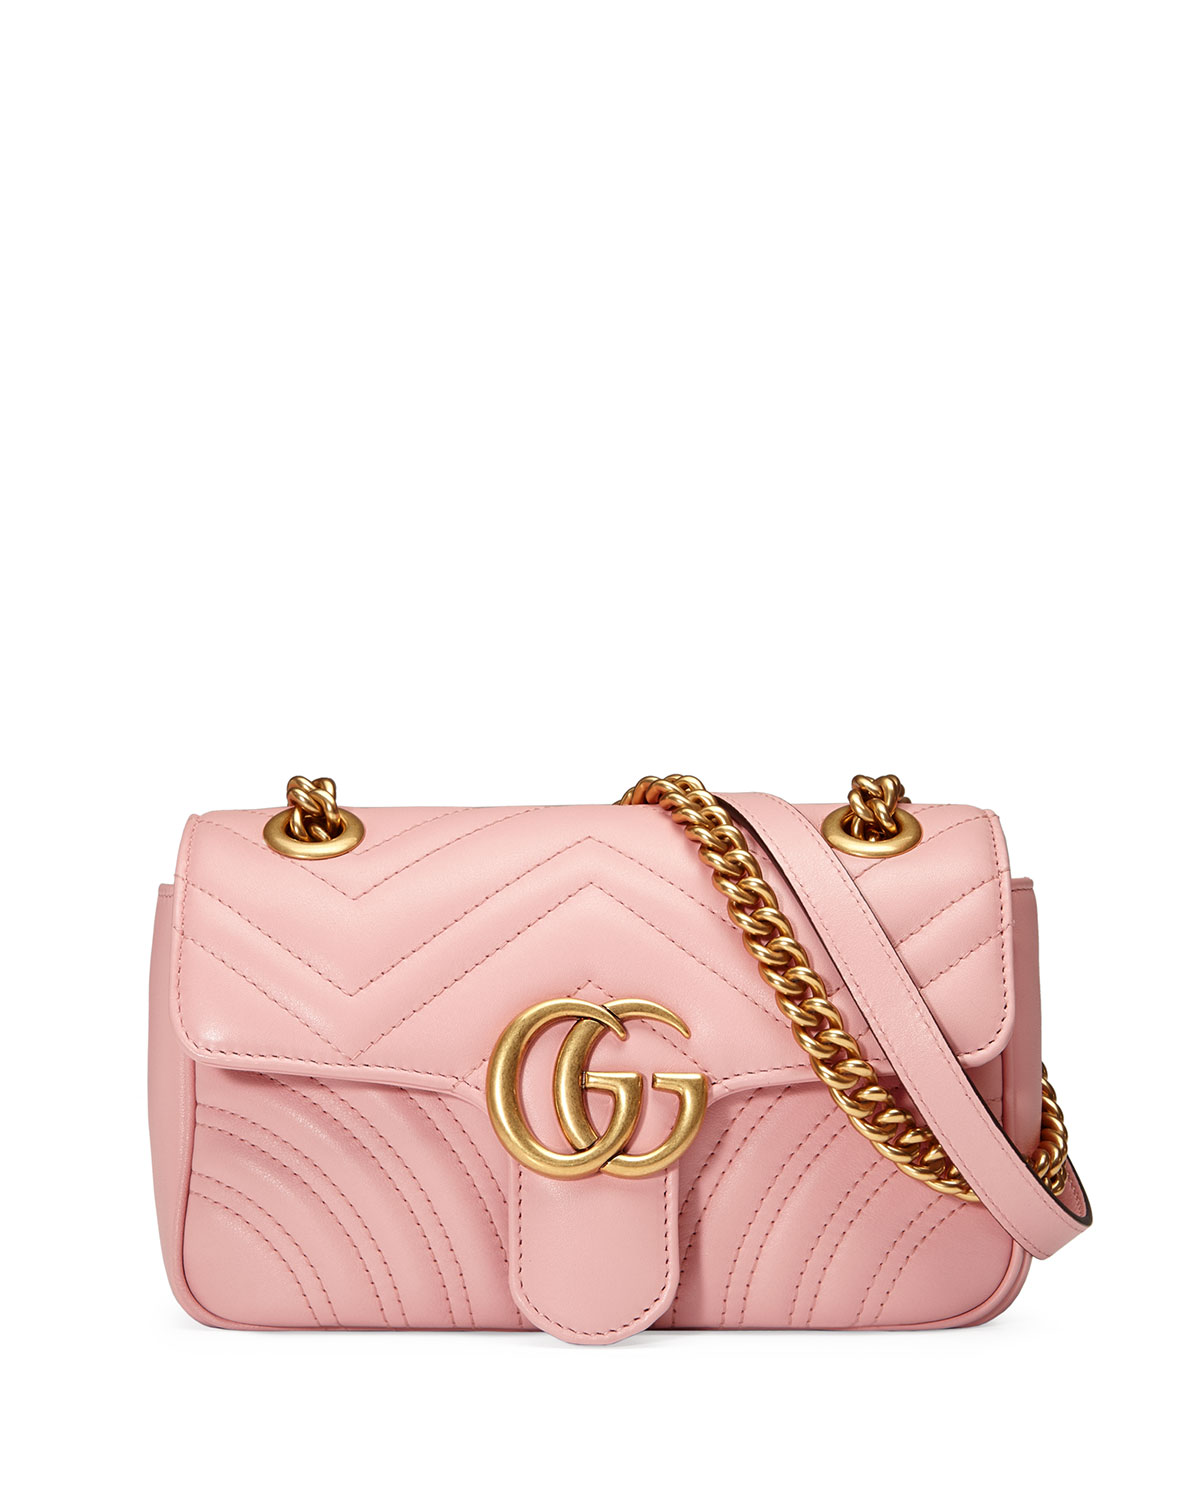 9e866fecb2d0 Gucci GG Marmont 2.0 Mini Quilted Leather Crossbody Bag | Neiman Marcus